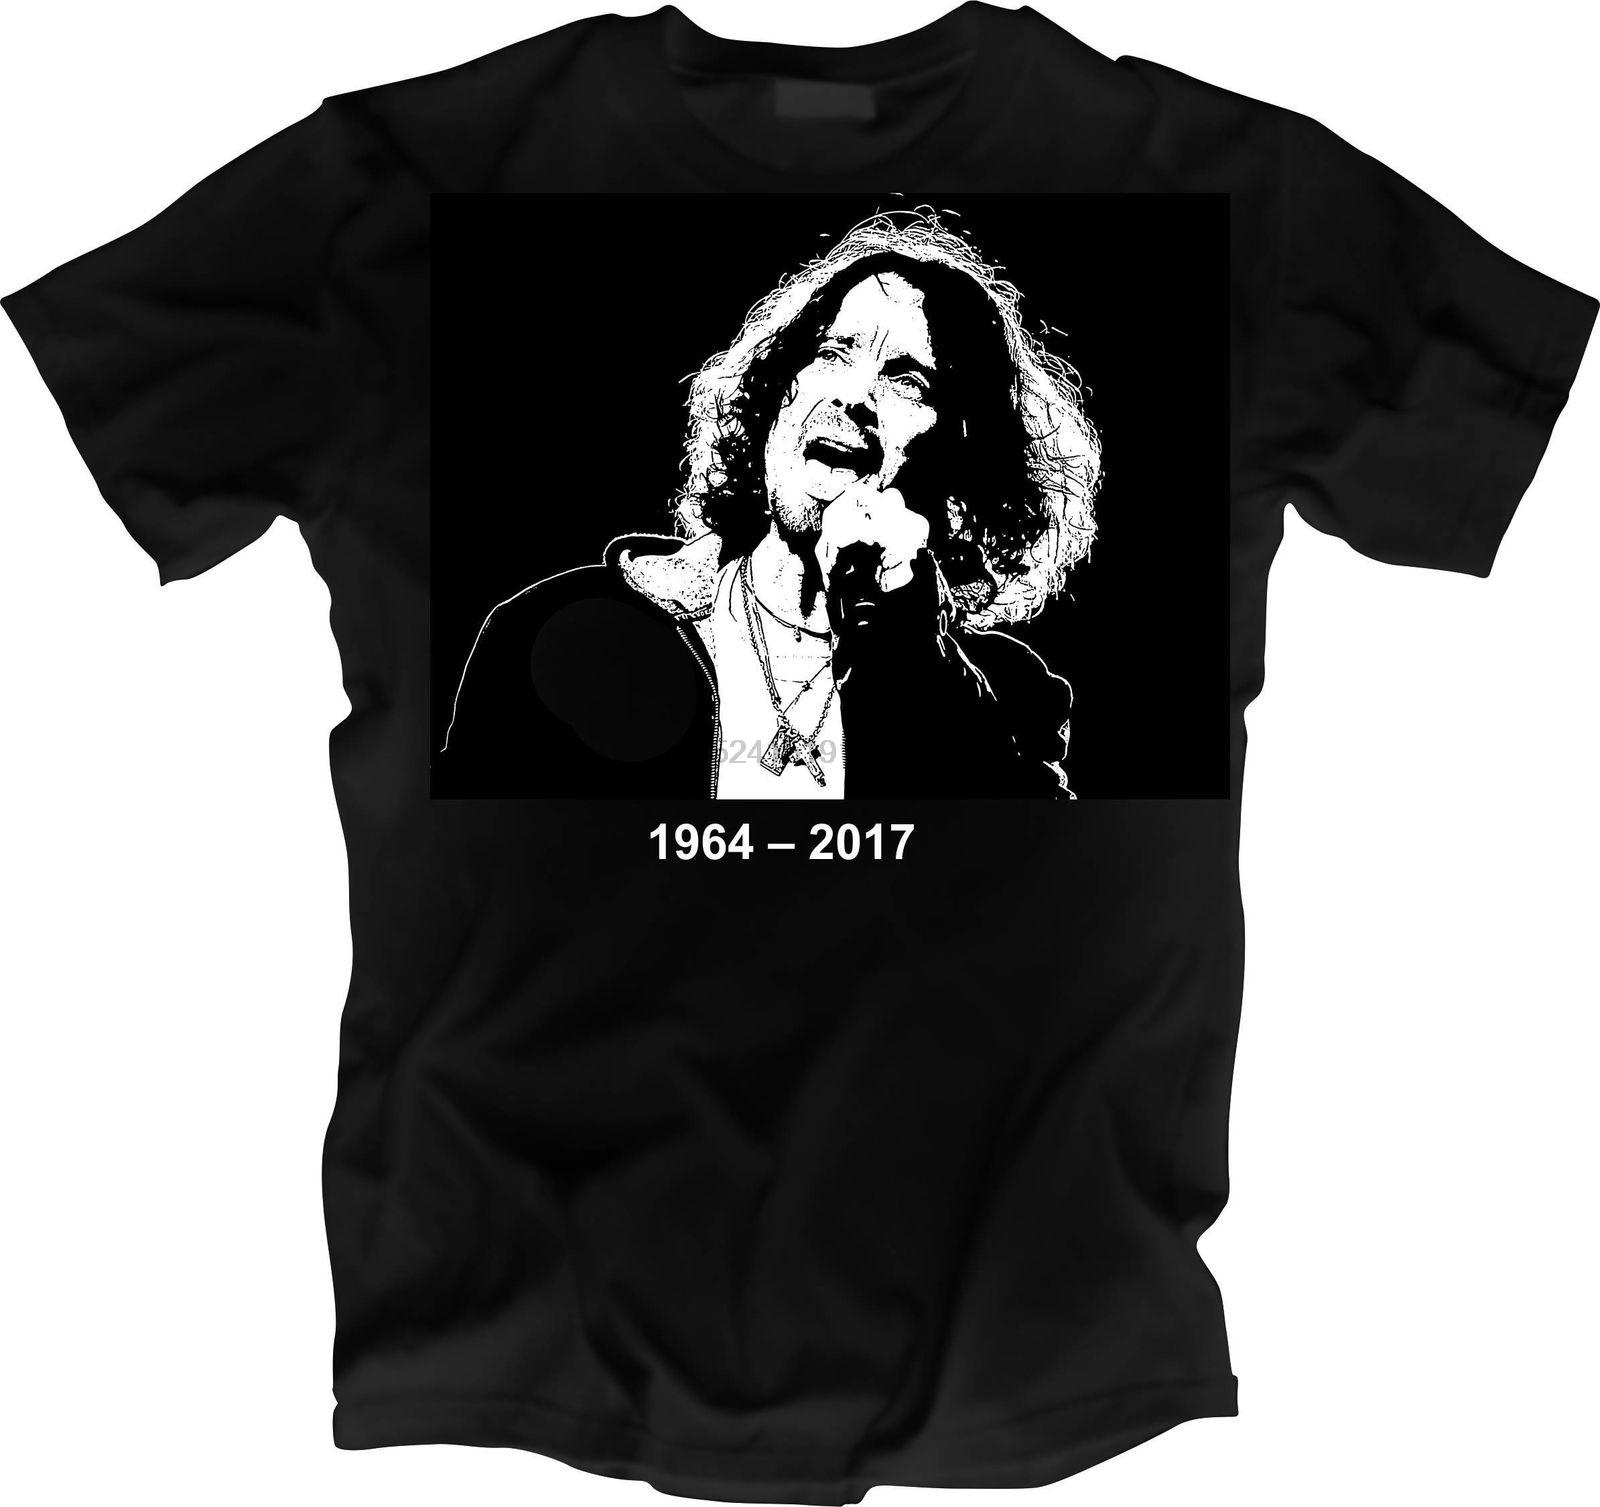 Chris Cornell Memorial Shirt R.I.P